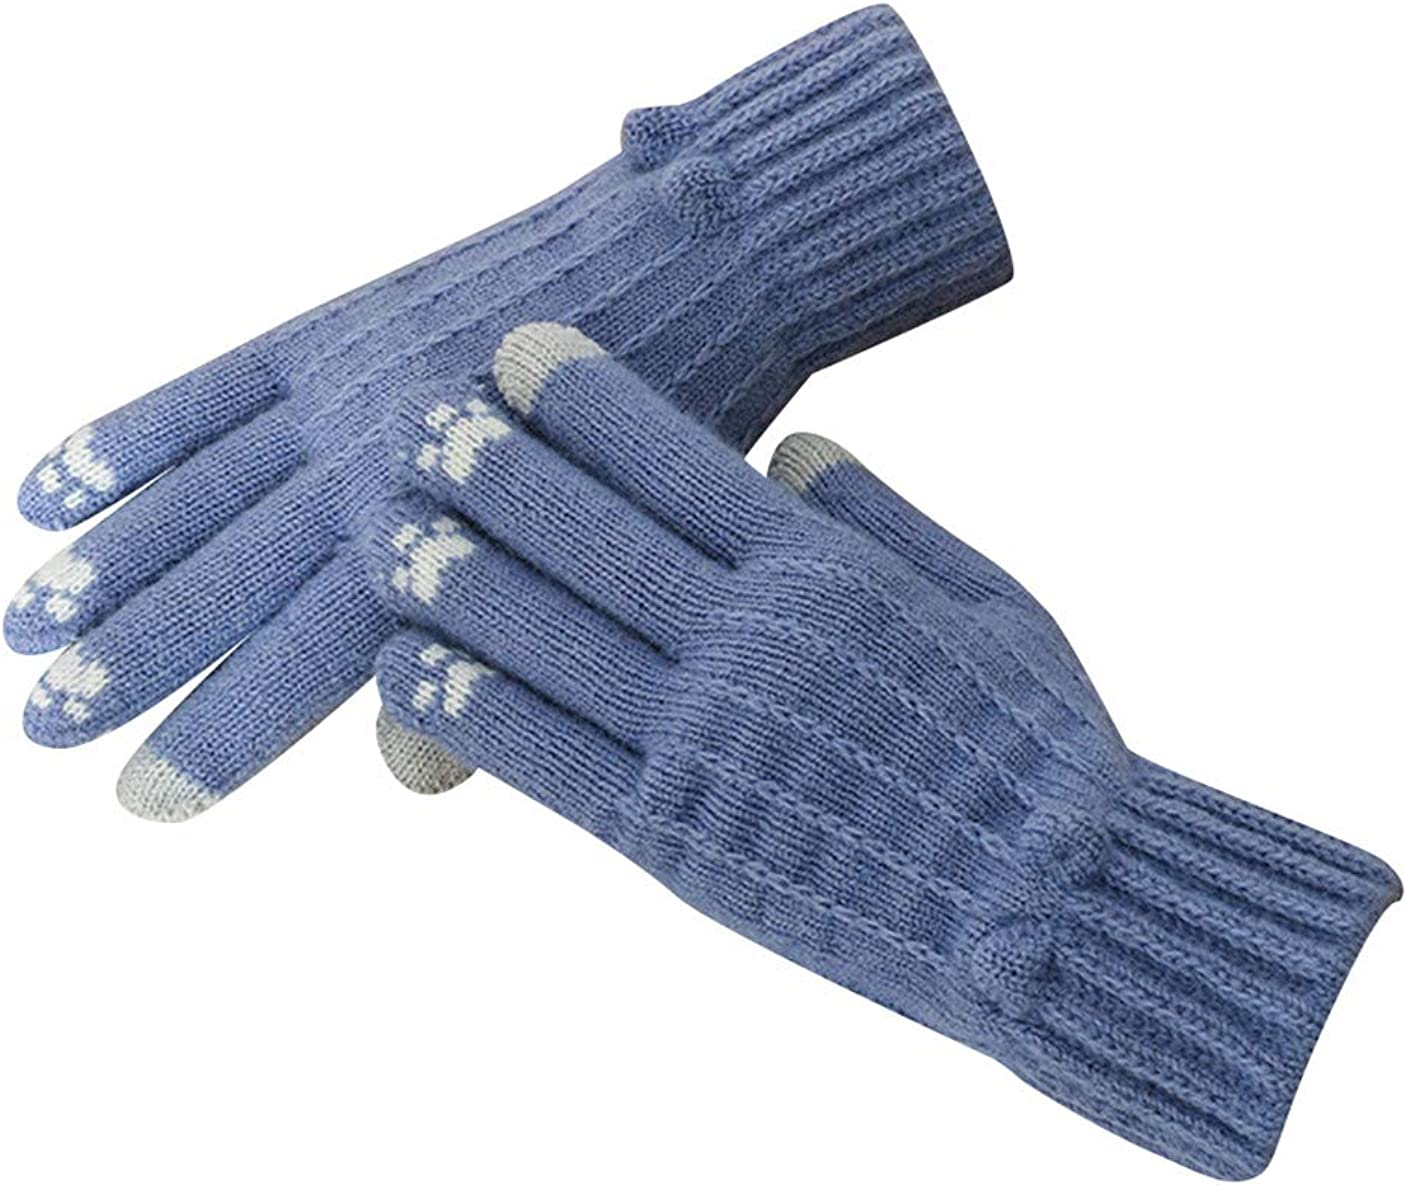 GRASWE Womens Cute Gloves Warm Texting Gloves Touch Screen Gloves Winter Knit Gloves